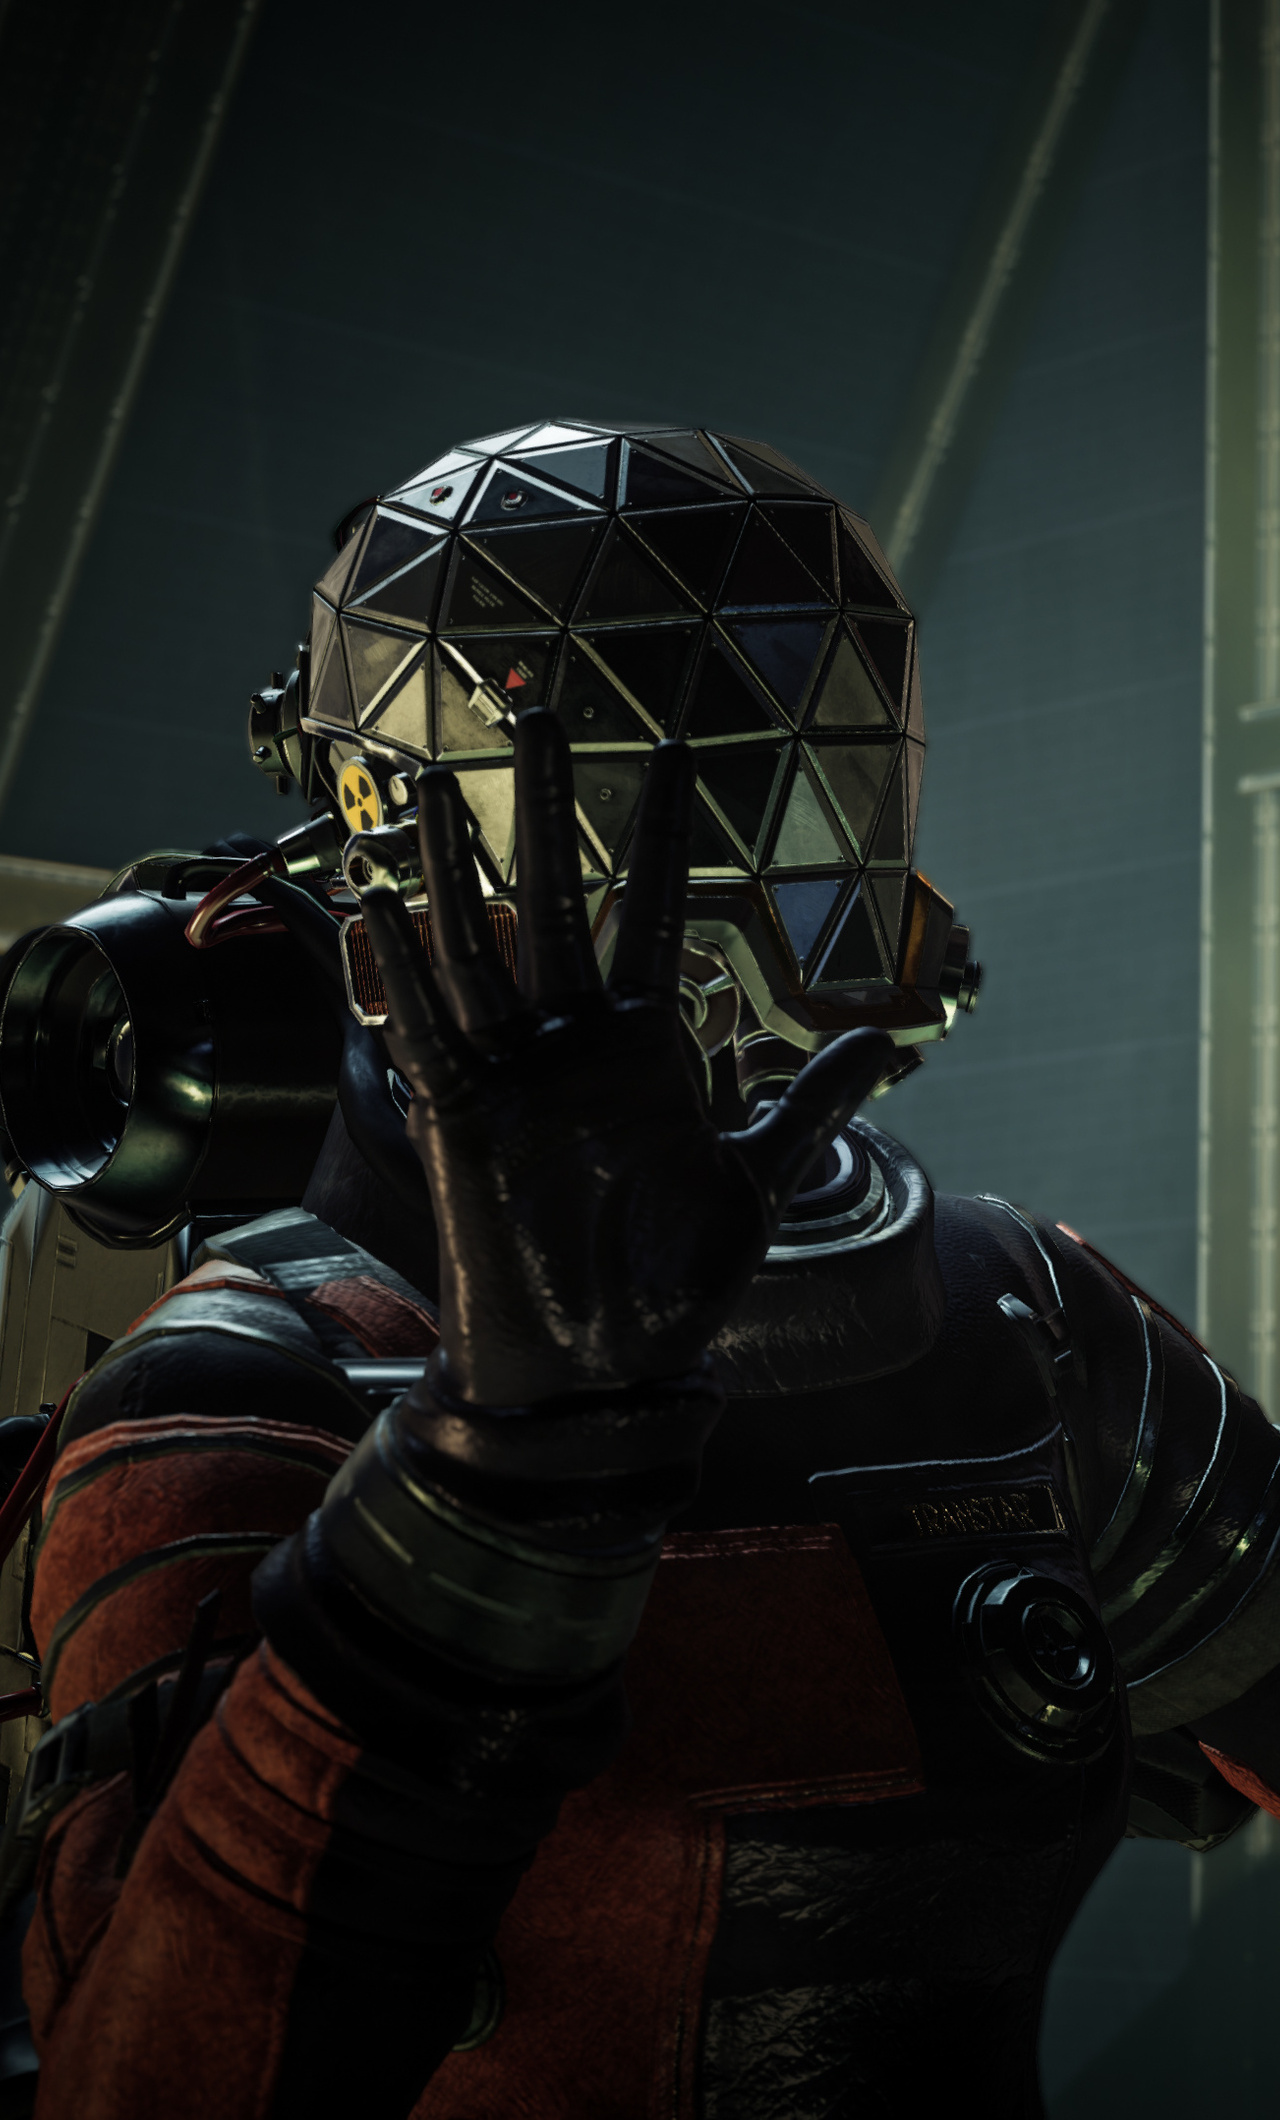 1280x2120 4k Prey Video Game Iphone 6 Hd 4k Wallpapers Images